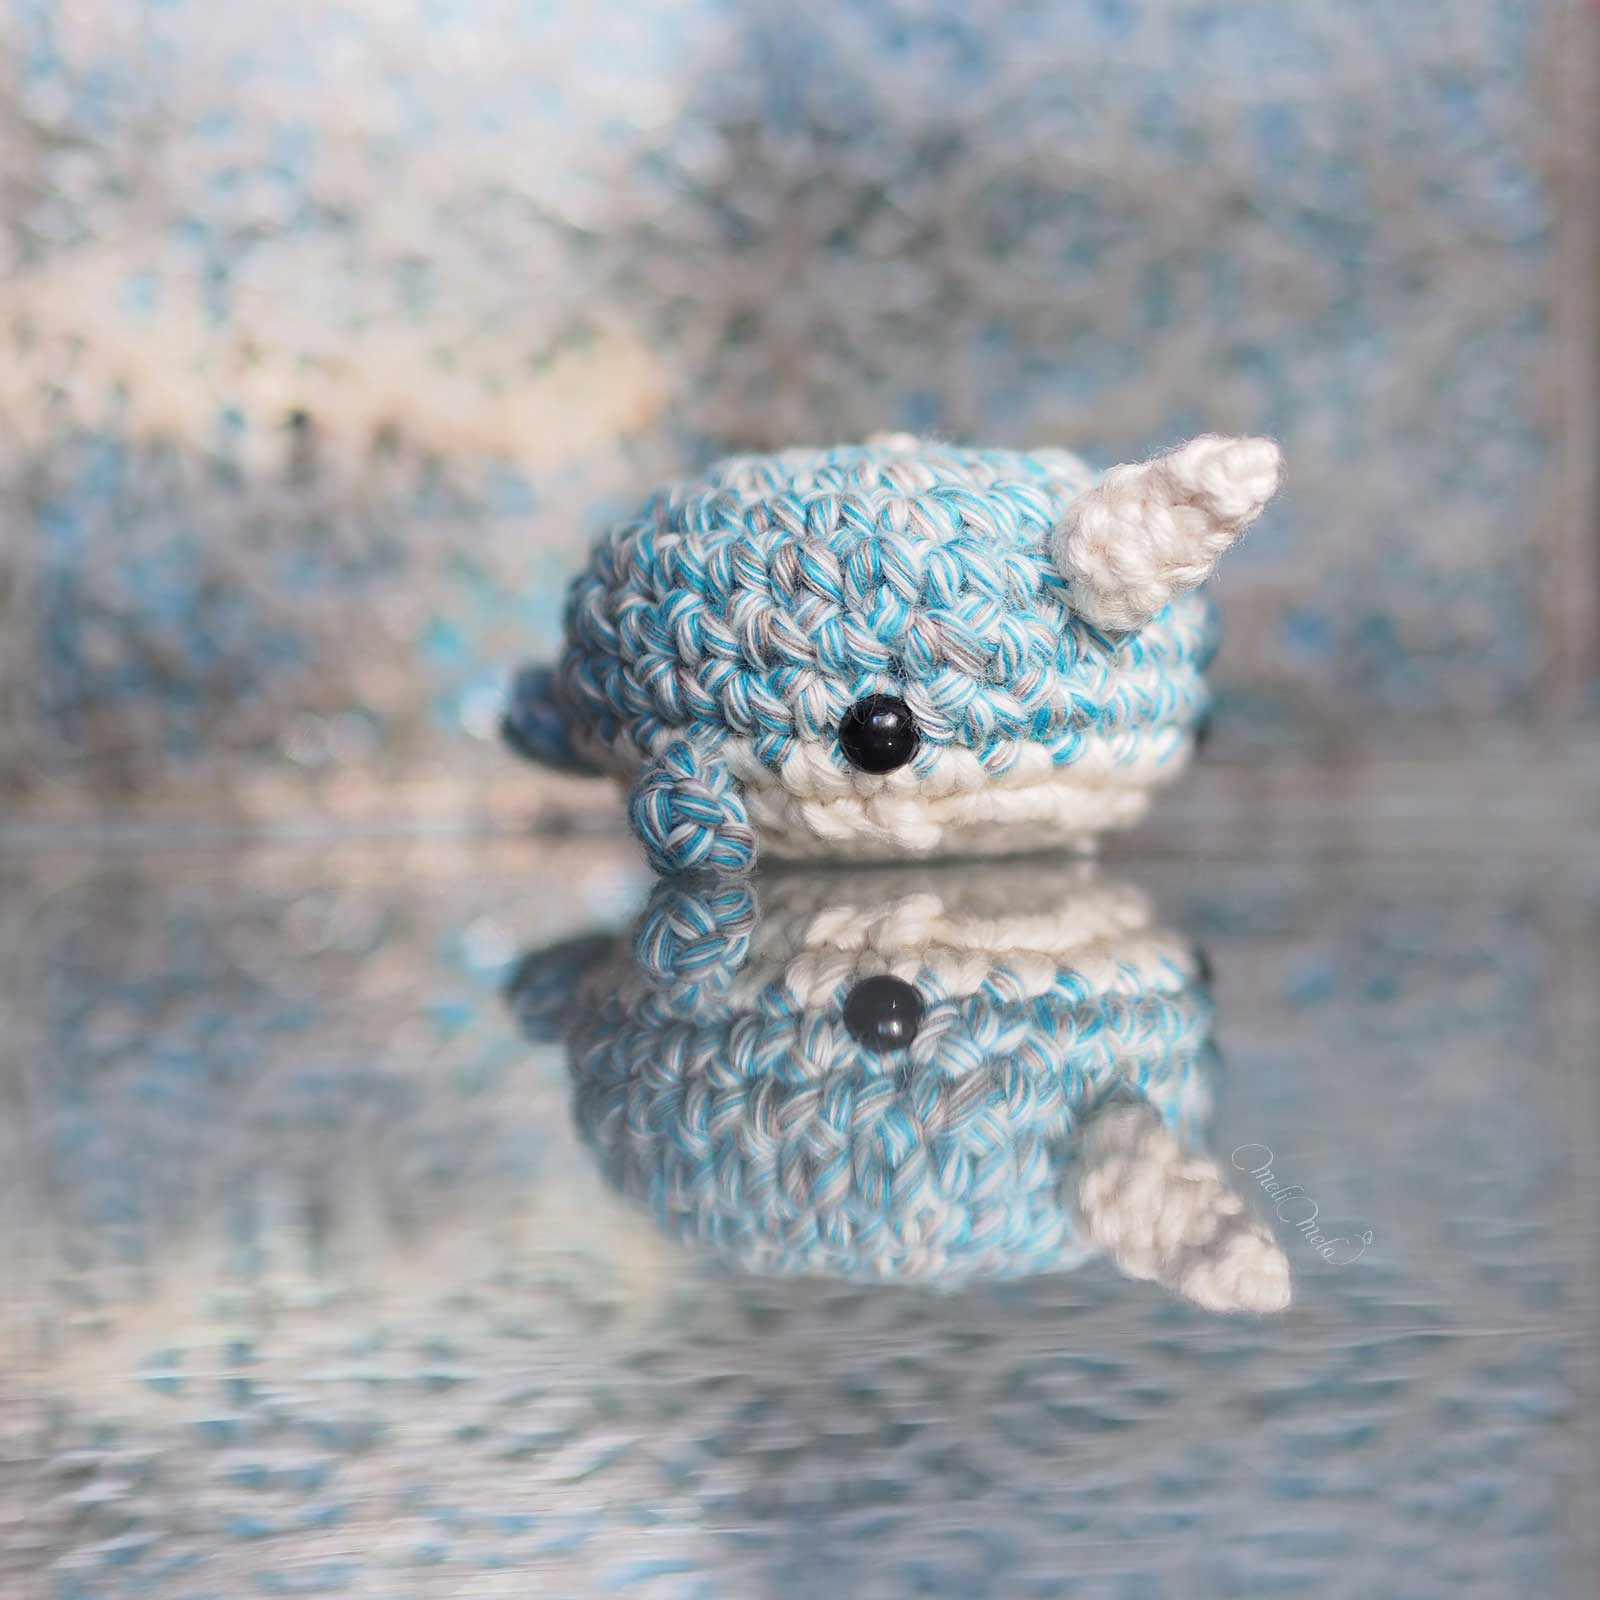 crochet narwhal amigurumi coton happyshinycotton woolandthegang laboutiquedemelimelo